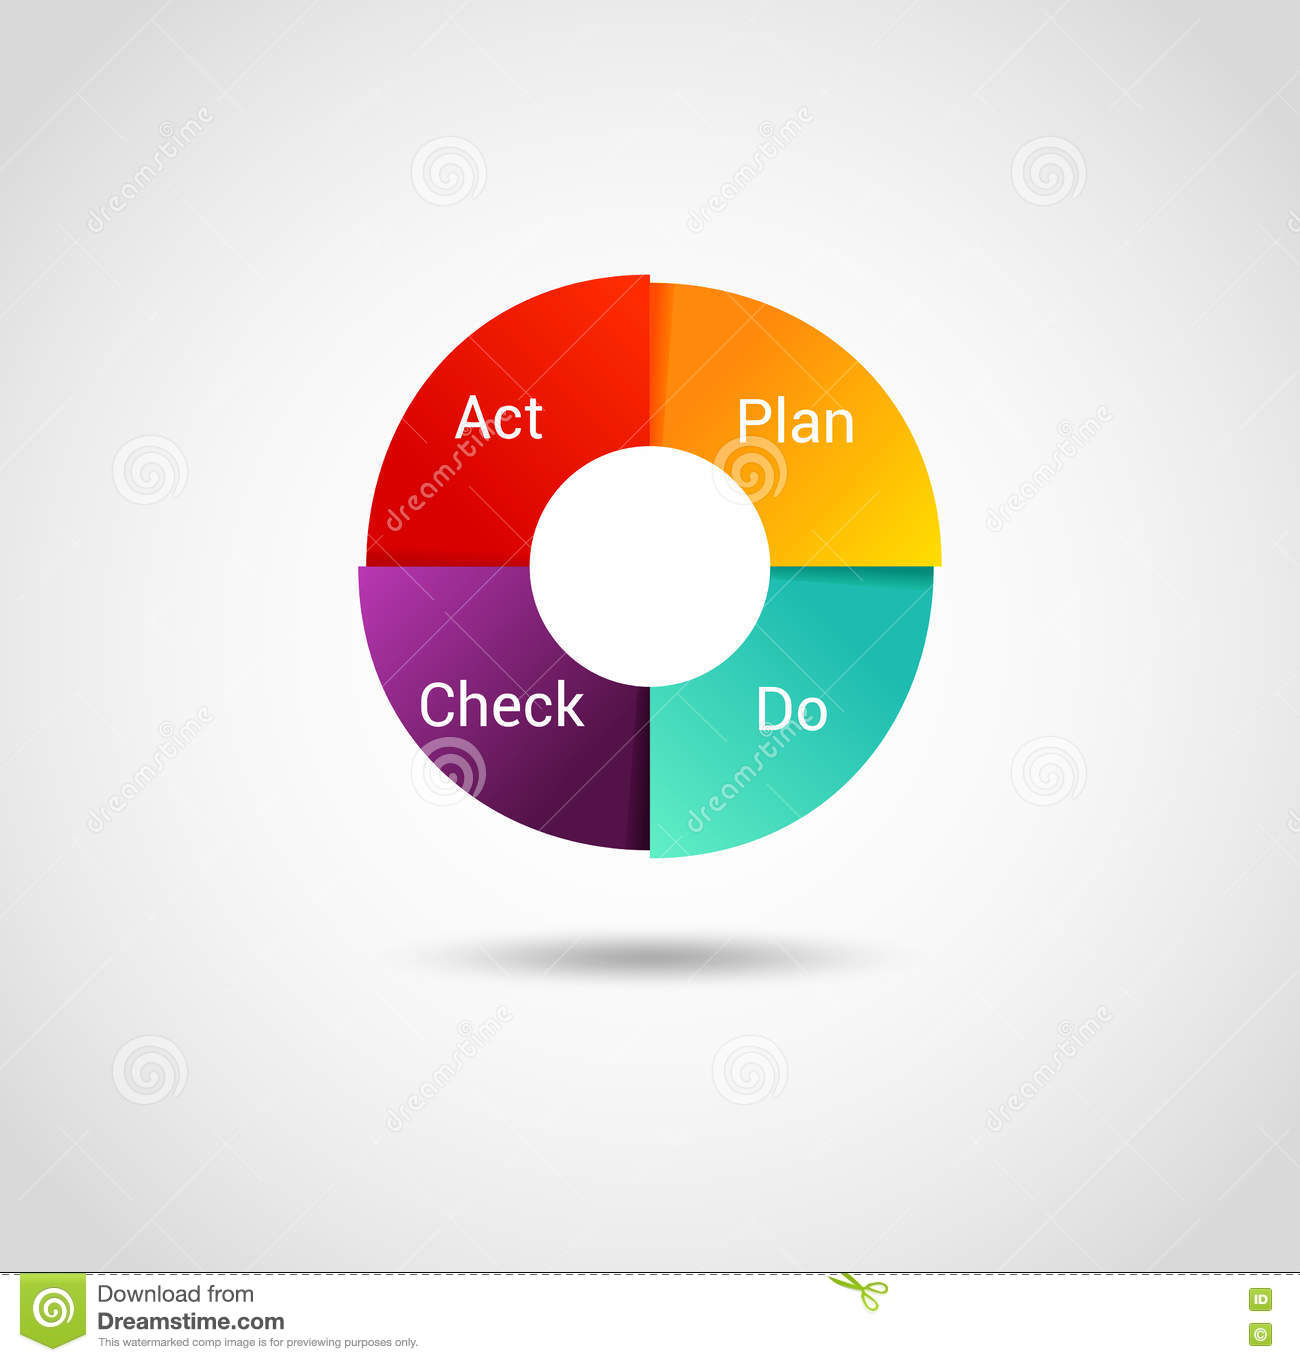 pdca cycle diagram toshiba satellite laptop parts pdsa cartoons illustrations and vector stock images 51